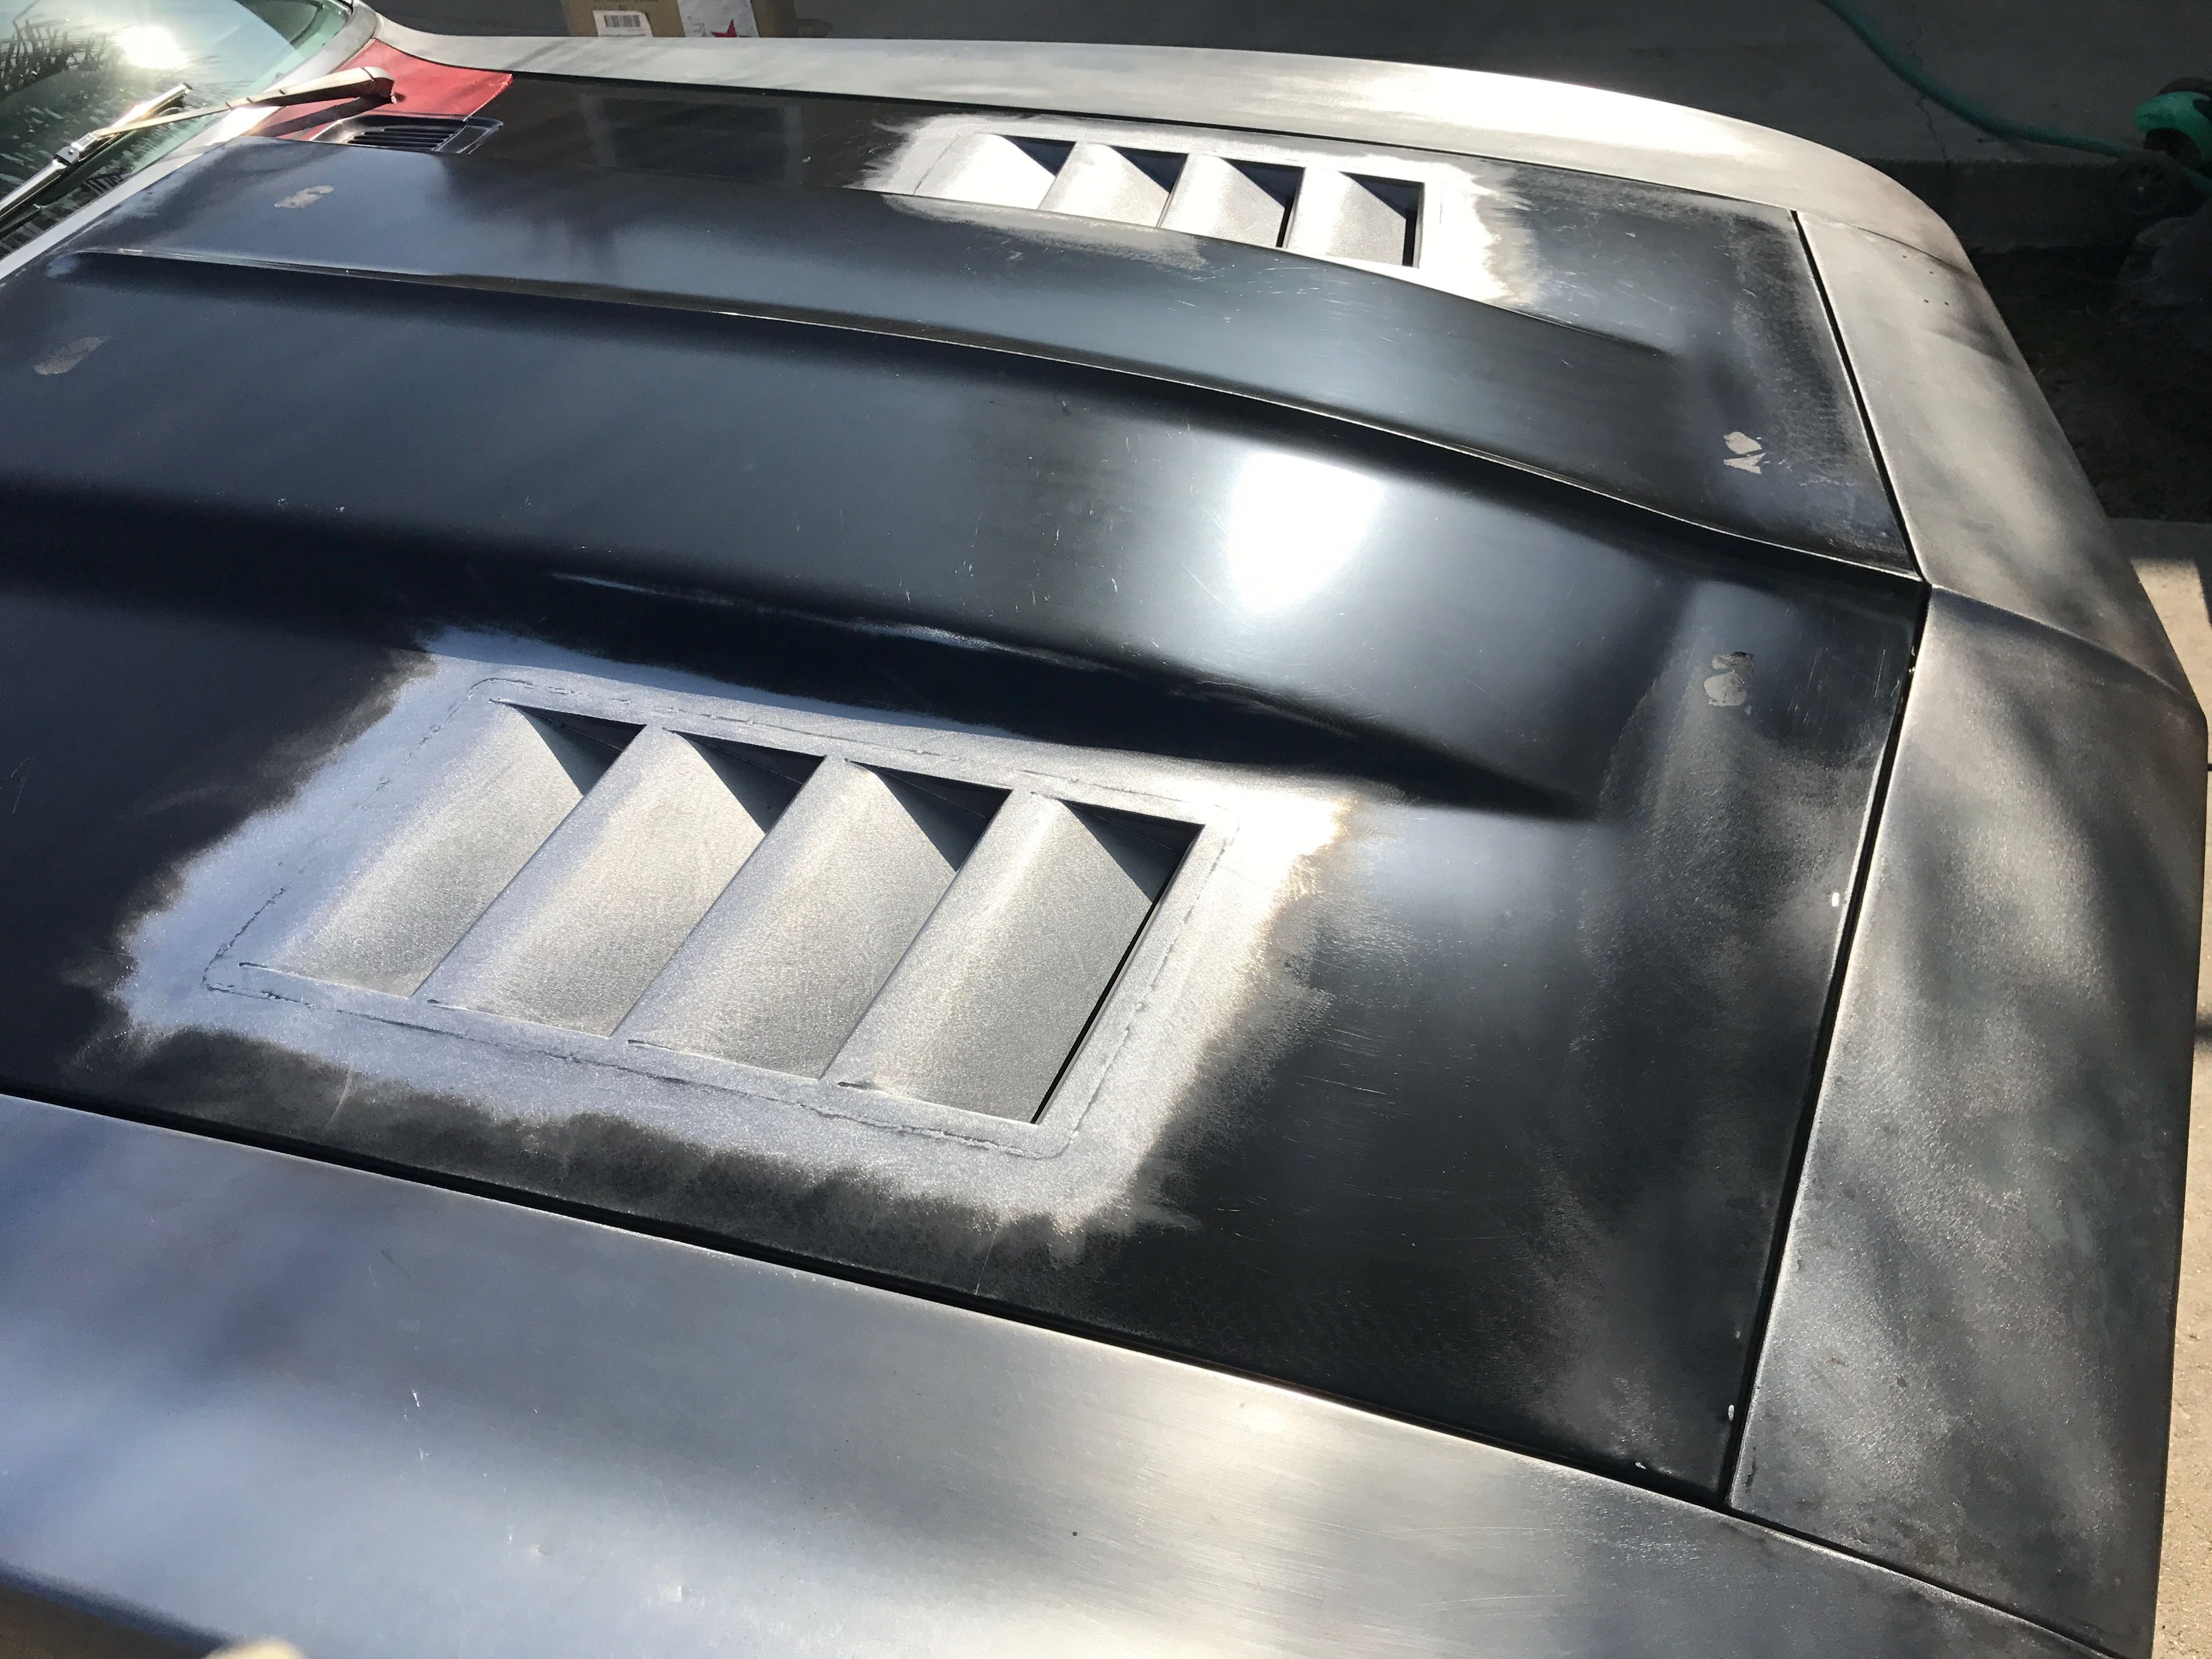 1969 Camaro Custom Hood Louvers Ig 1969camaroskunkworks Heat Extractors Universal Hood Louvers Lower Engine Bay T Custom Cars Camaro Custom Metal Fabrication